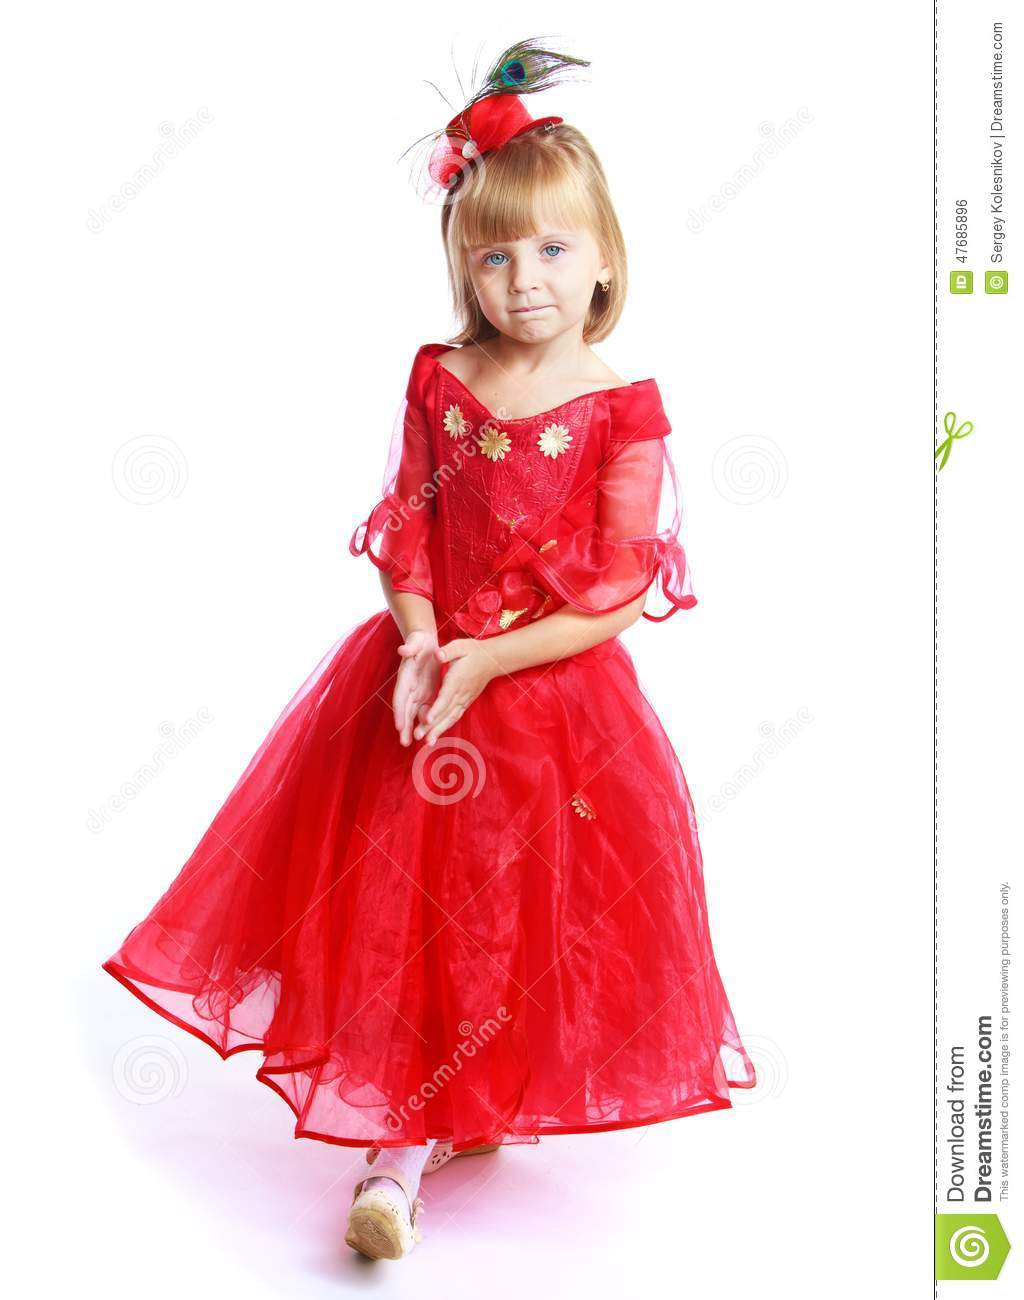 d5b8dffb8552 Preparing for Christmas, holiday, baby joy concept .Charming little girl in  a bright red dress.Isolated on white background.